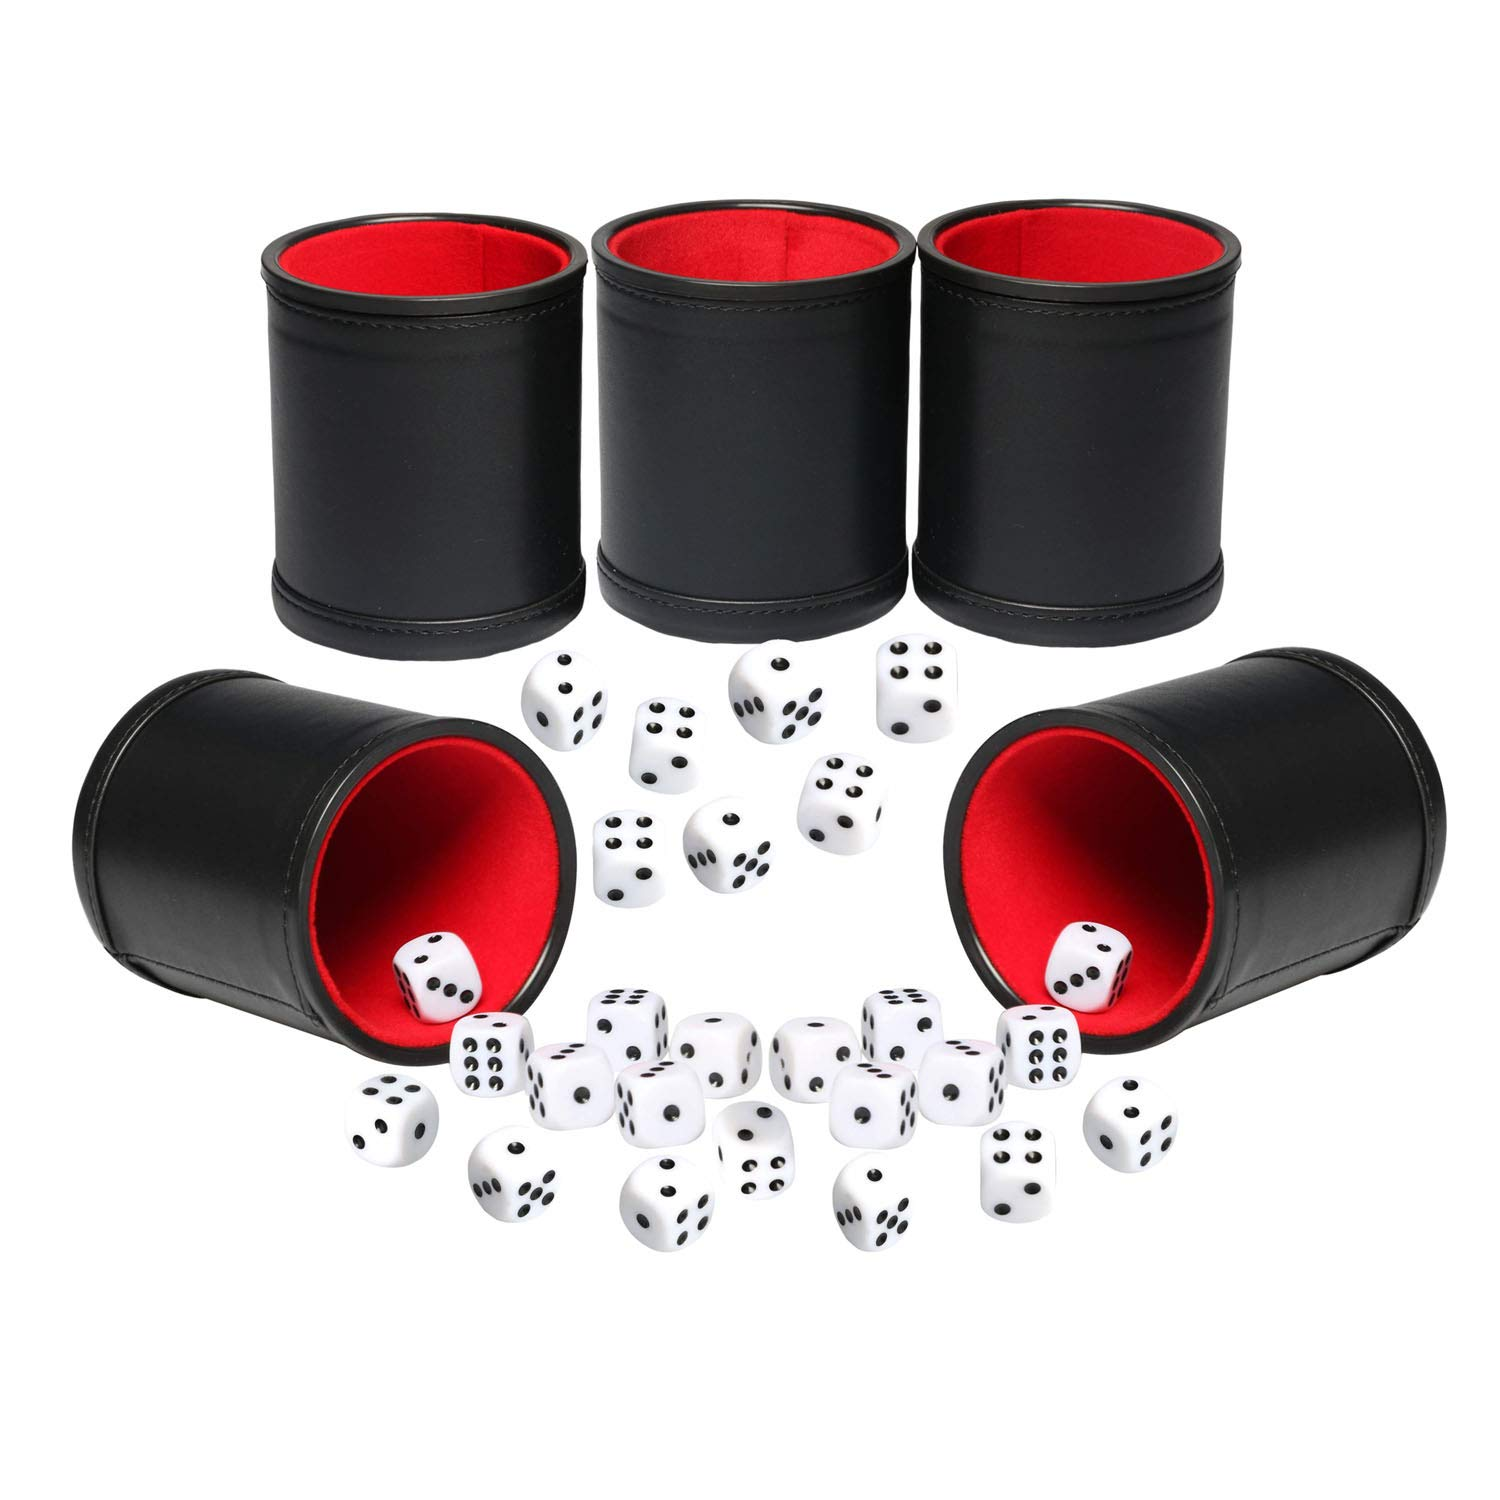 Leatherette Dice Cup Set Red Felt Lined Shaker with 6 Dot Dices for Yahtzee Farkle Bar Party Dice Games-5 Pack by TOPTAN